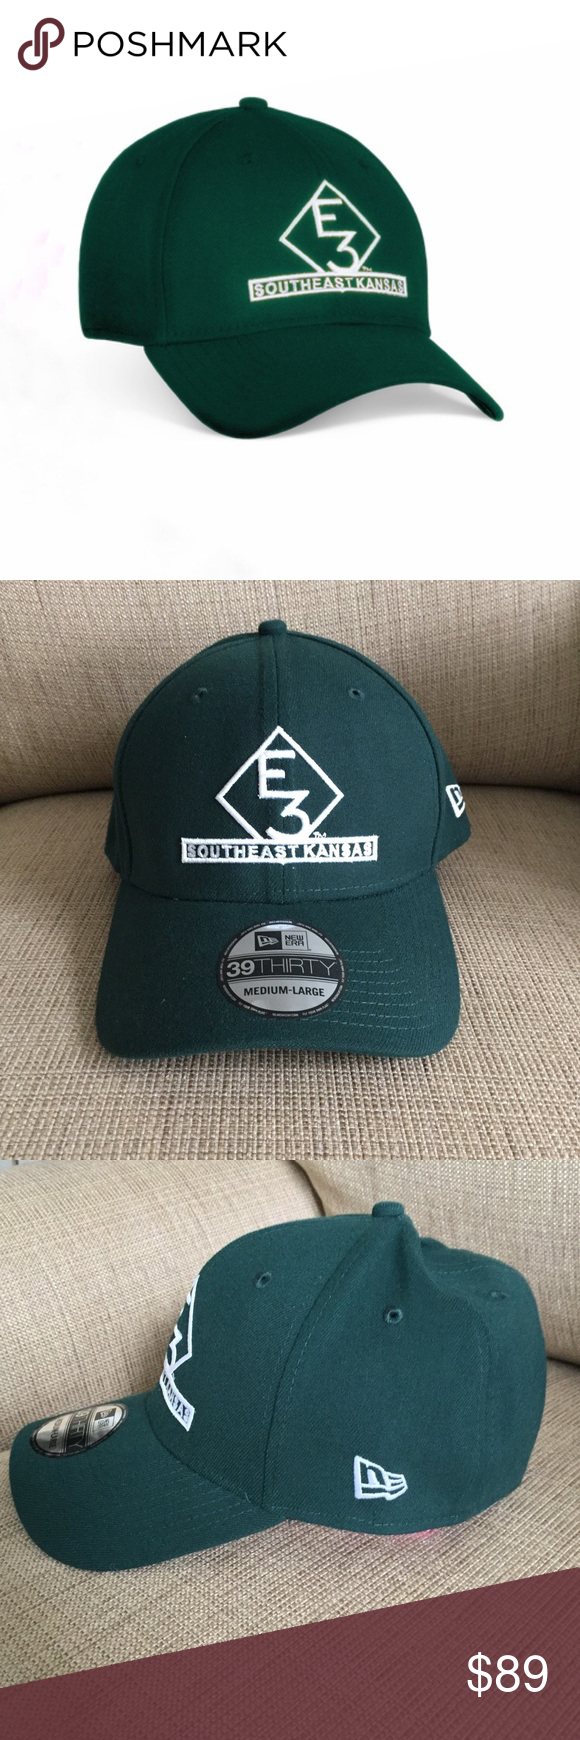 74c10716be30e E3 SOUTHEAST KANSAS NEW ERA HAT Made popular by Luke Bryan. Green color is  currently sold out. New Era Accessories Hats